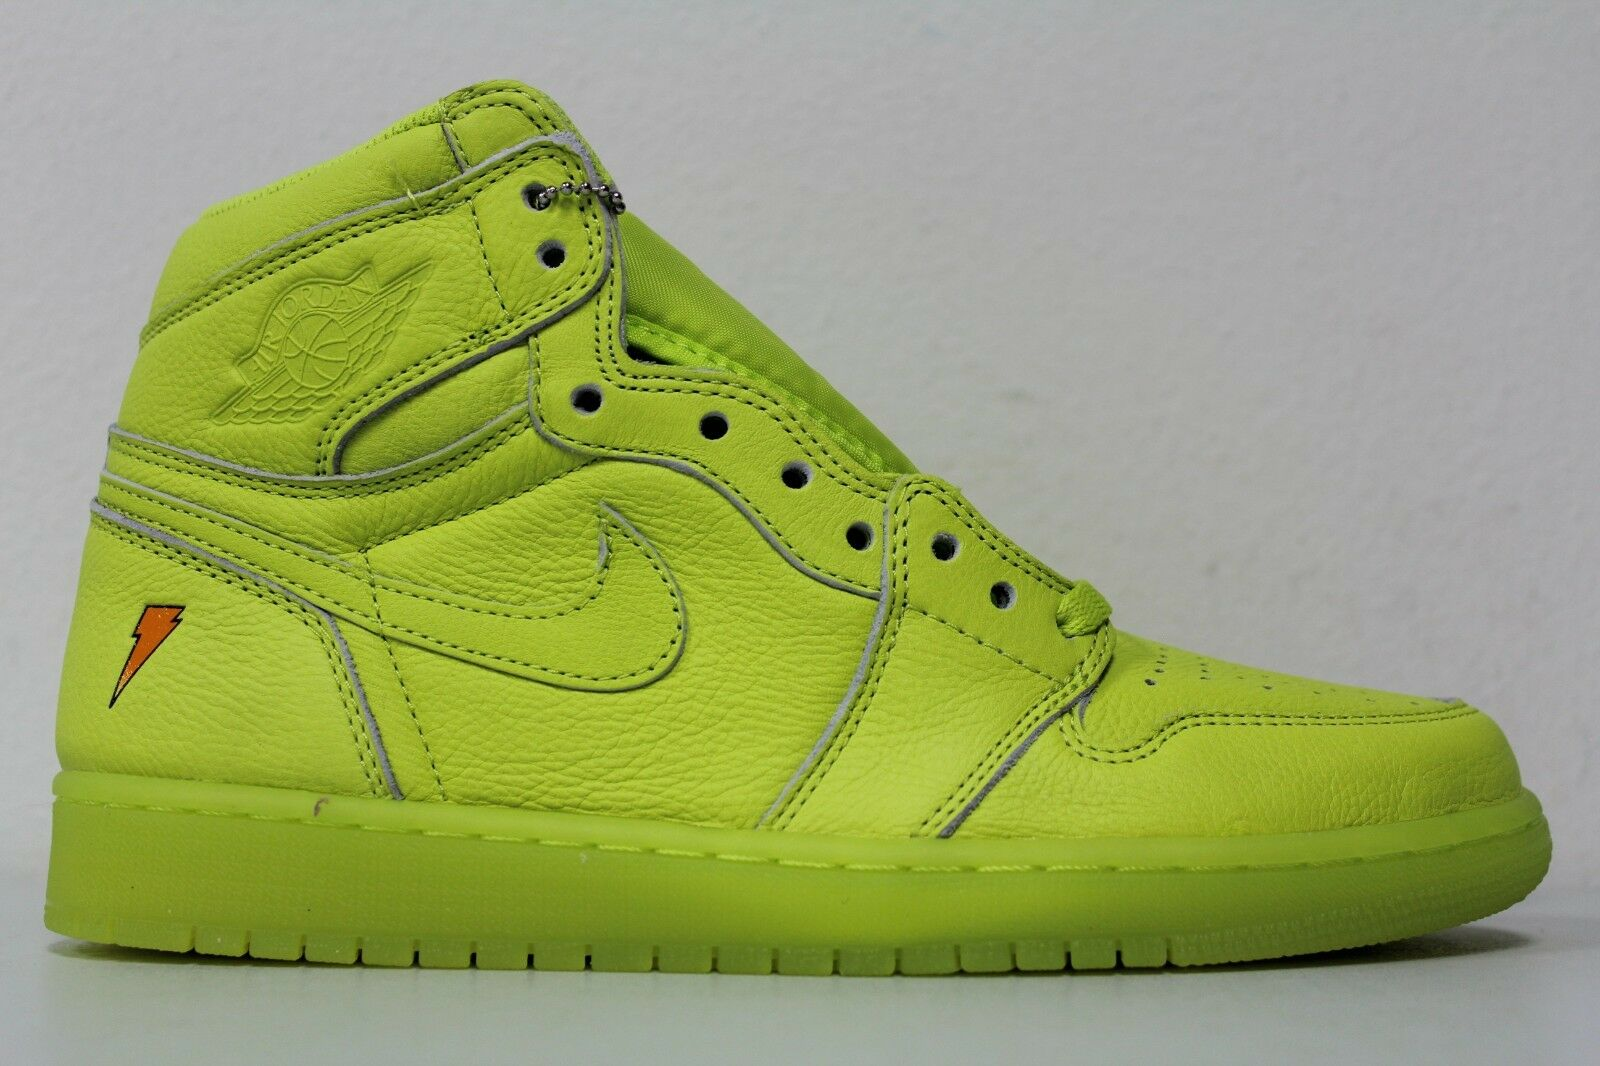 Nike Air Jordan 1 Retro HI OG G8RD Sz 13 Gatorade Lime Cyber Yellow AJ5997-345